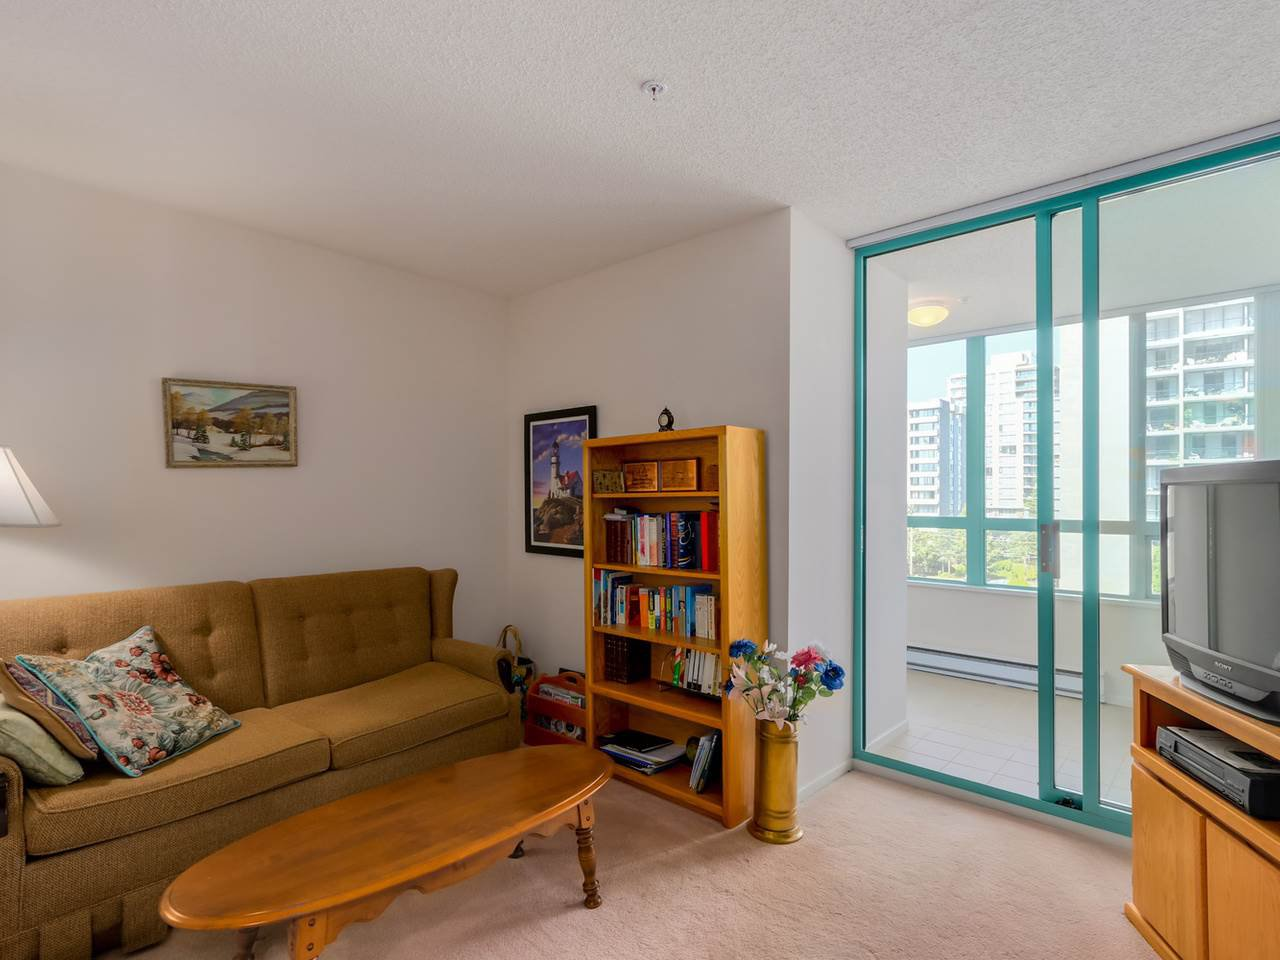 Photo 13: Photos: 403 728 PRINCESS Street in New Westminster: Uptown NW Condo for sale : MLS®# R2061685